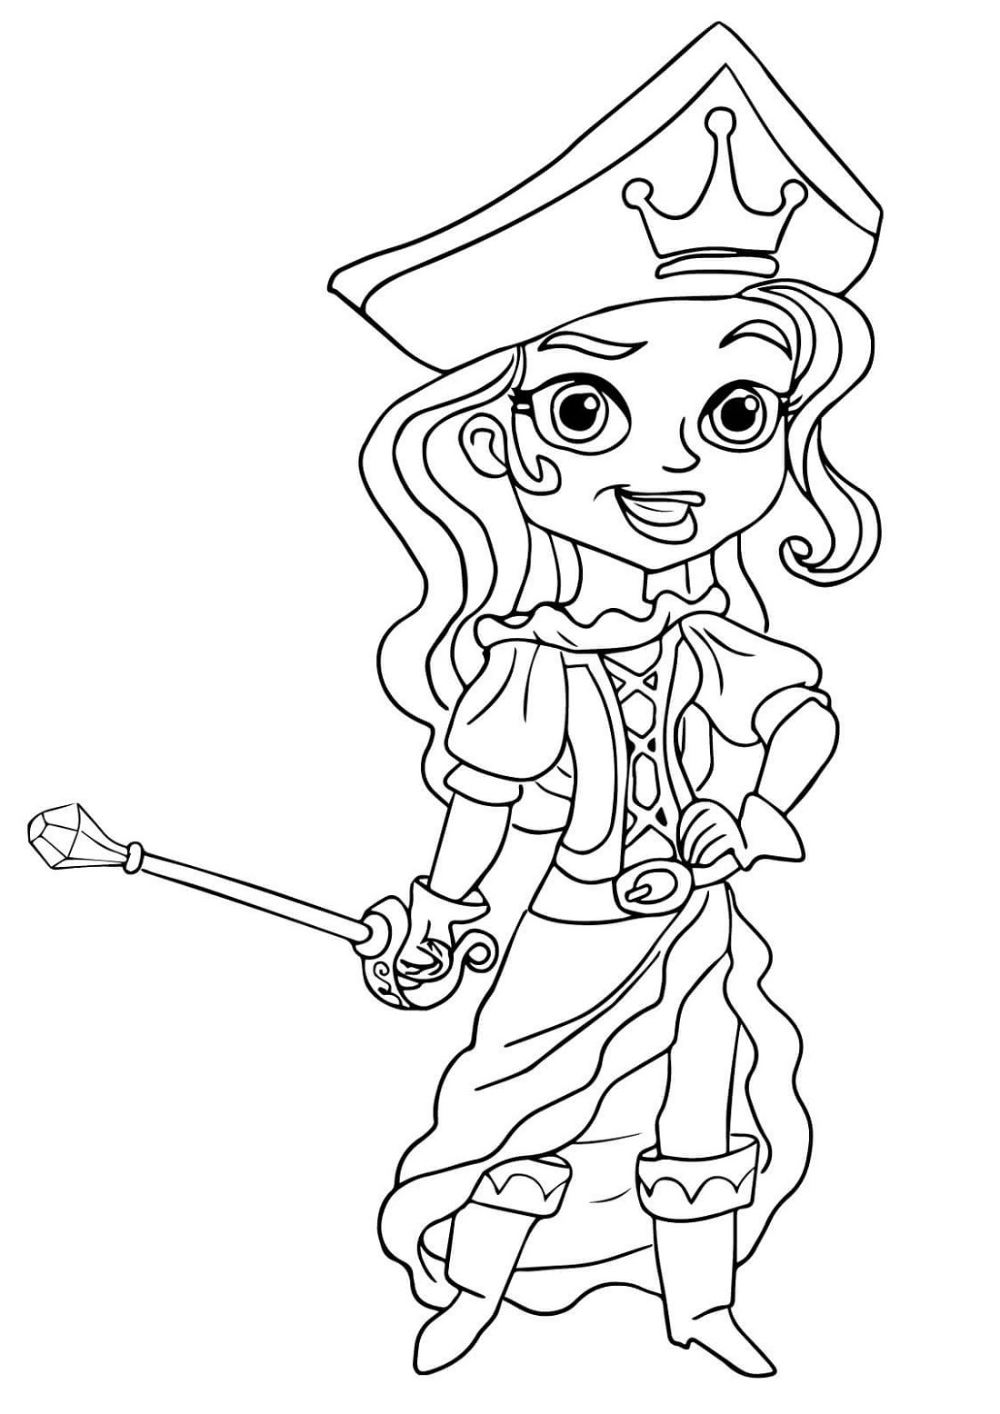 Printable Pirate Color Pages 101 Activity Free Coloring Pages Free Printable Coloring Pages Coloring Pages [ 1414 x 1000 Pixel ]